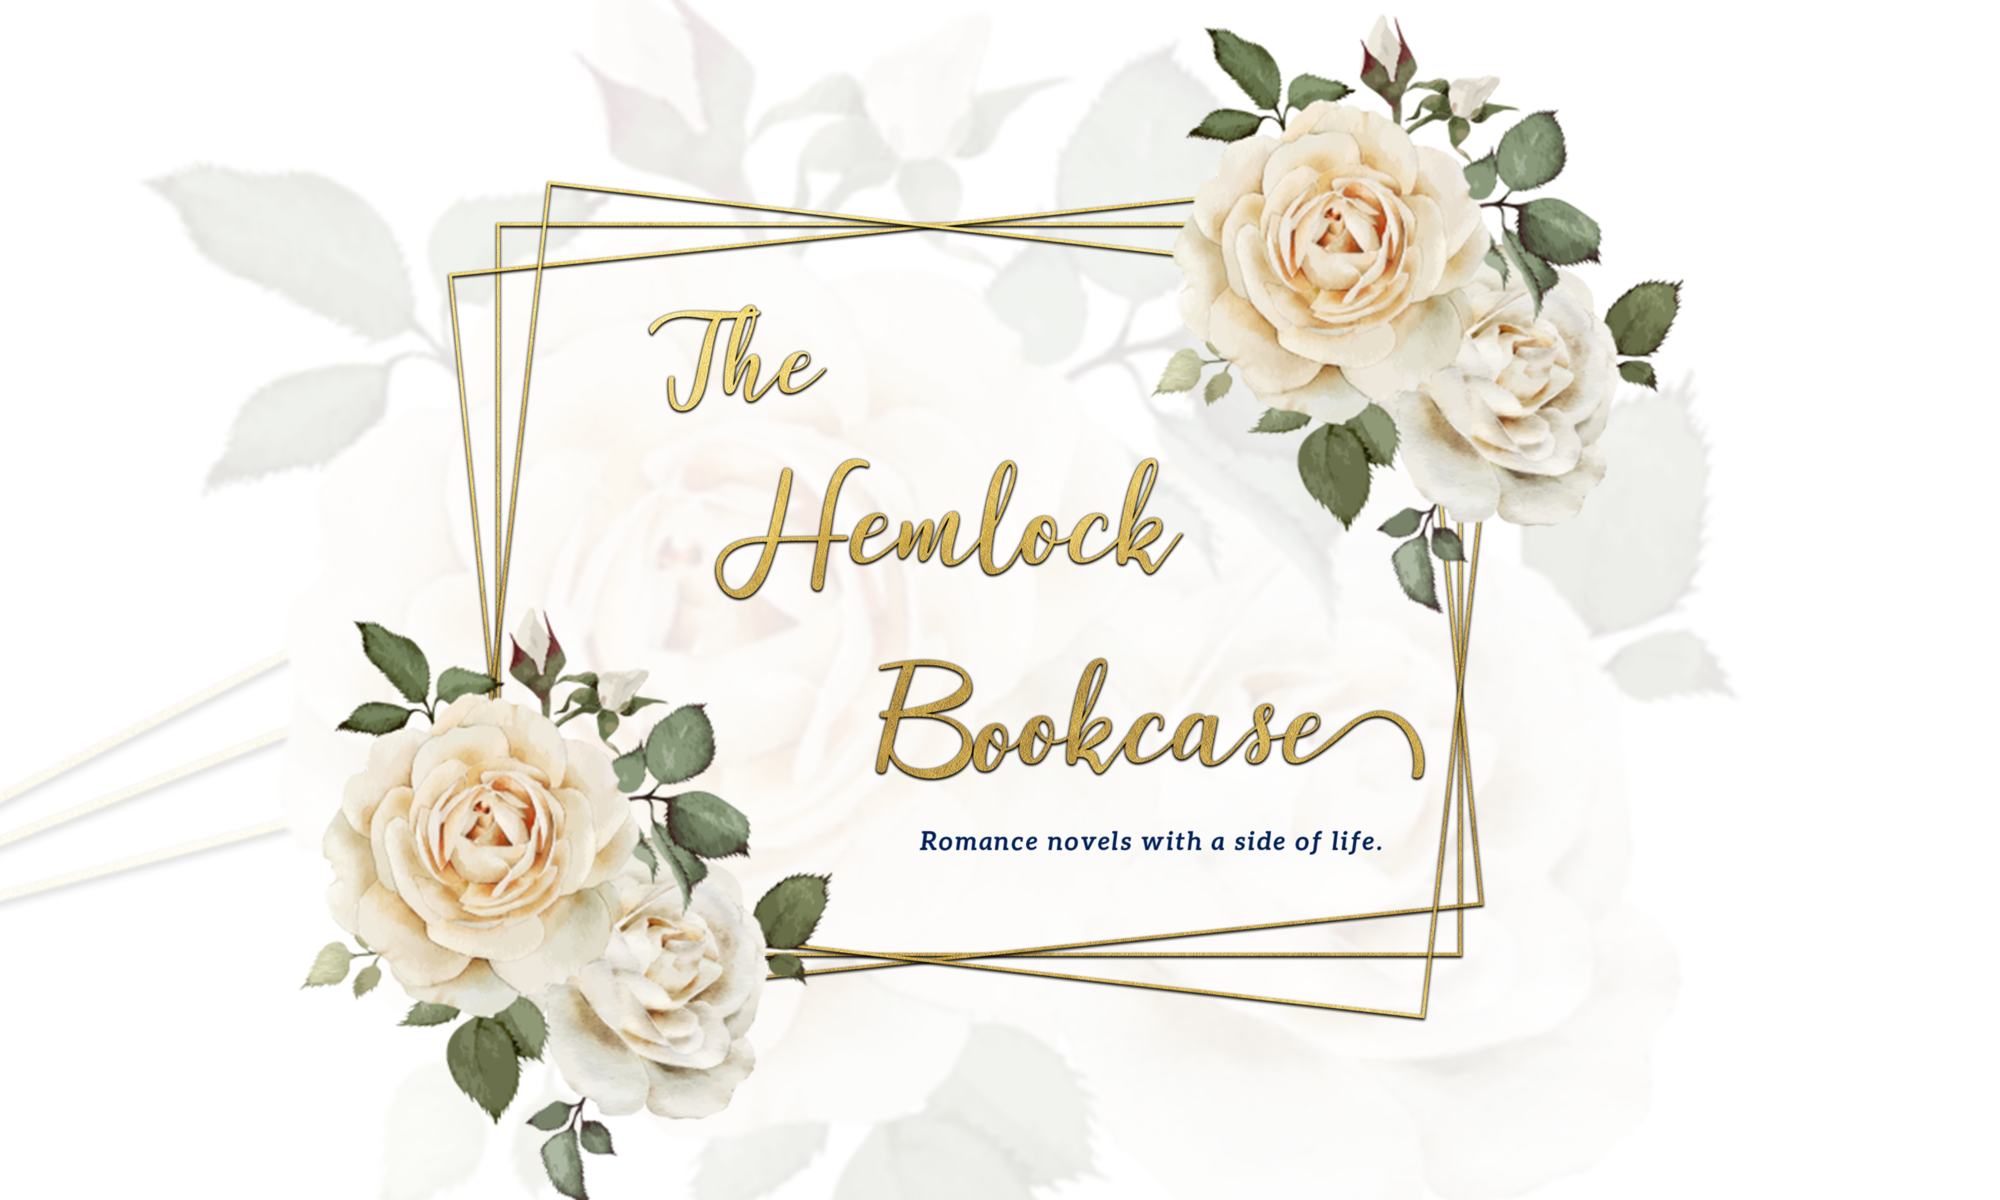 The Hemlock Bookcase